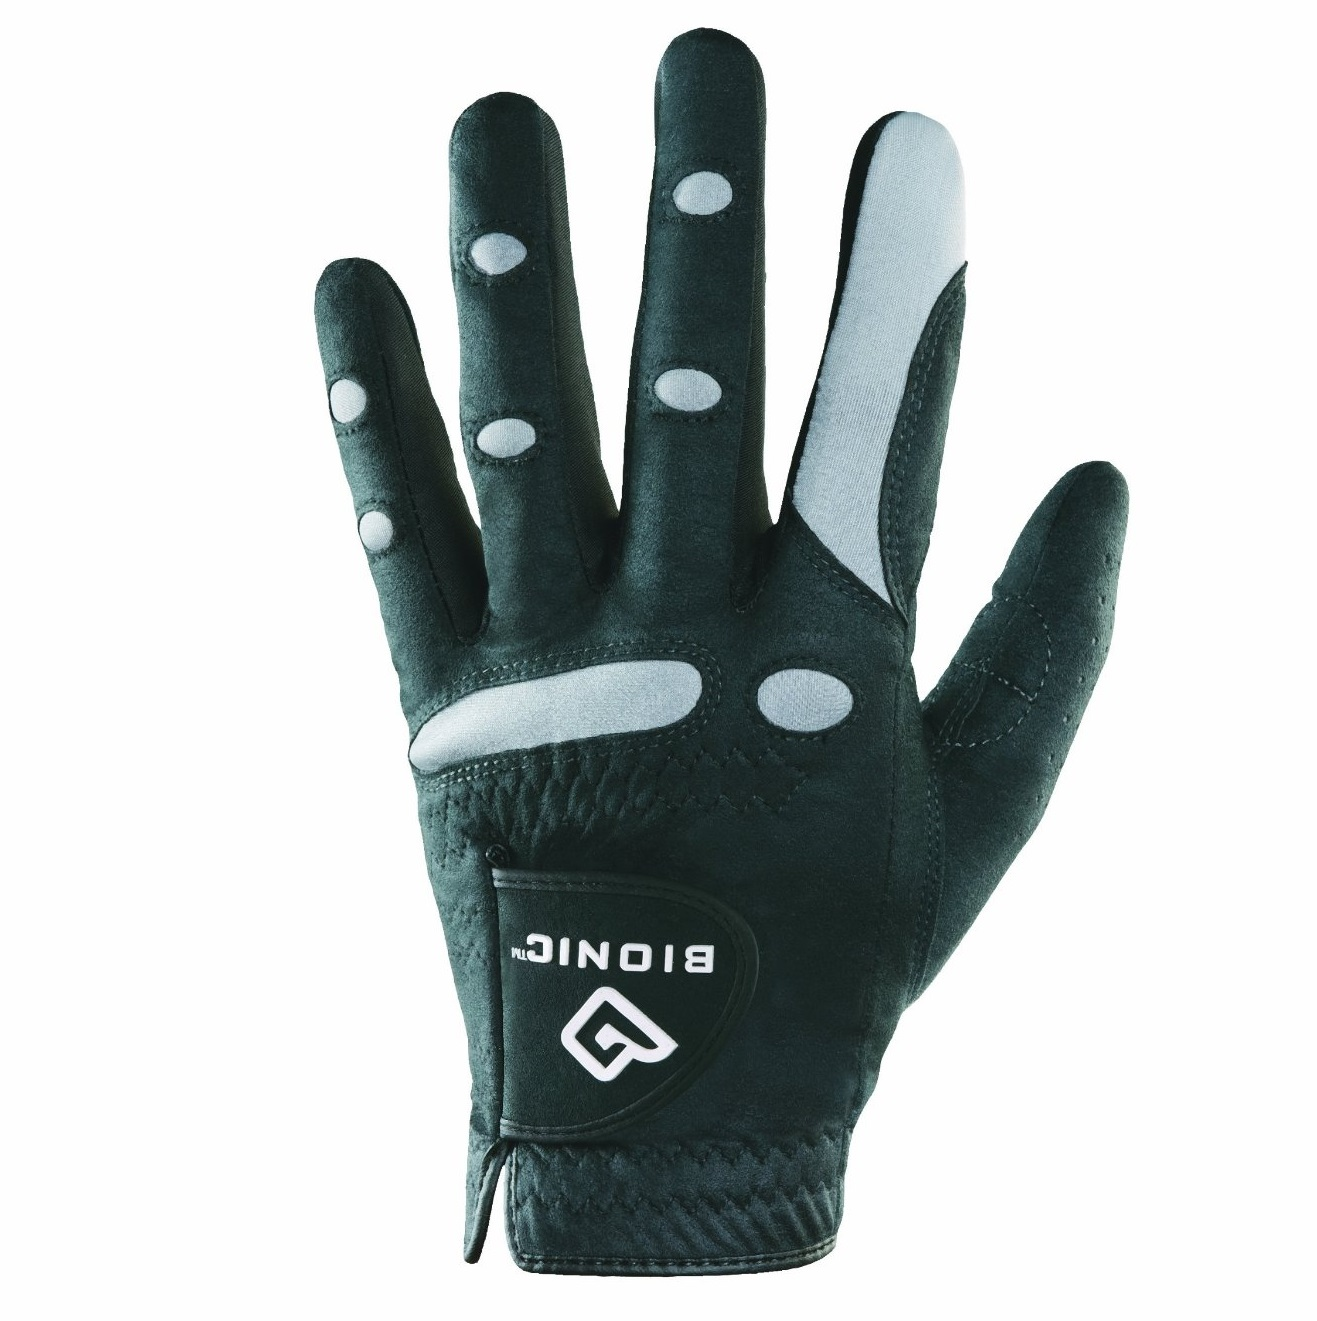 Bionic Mens Golf Gloves